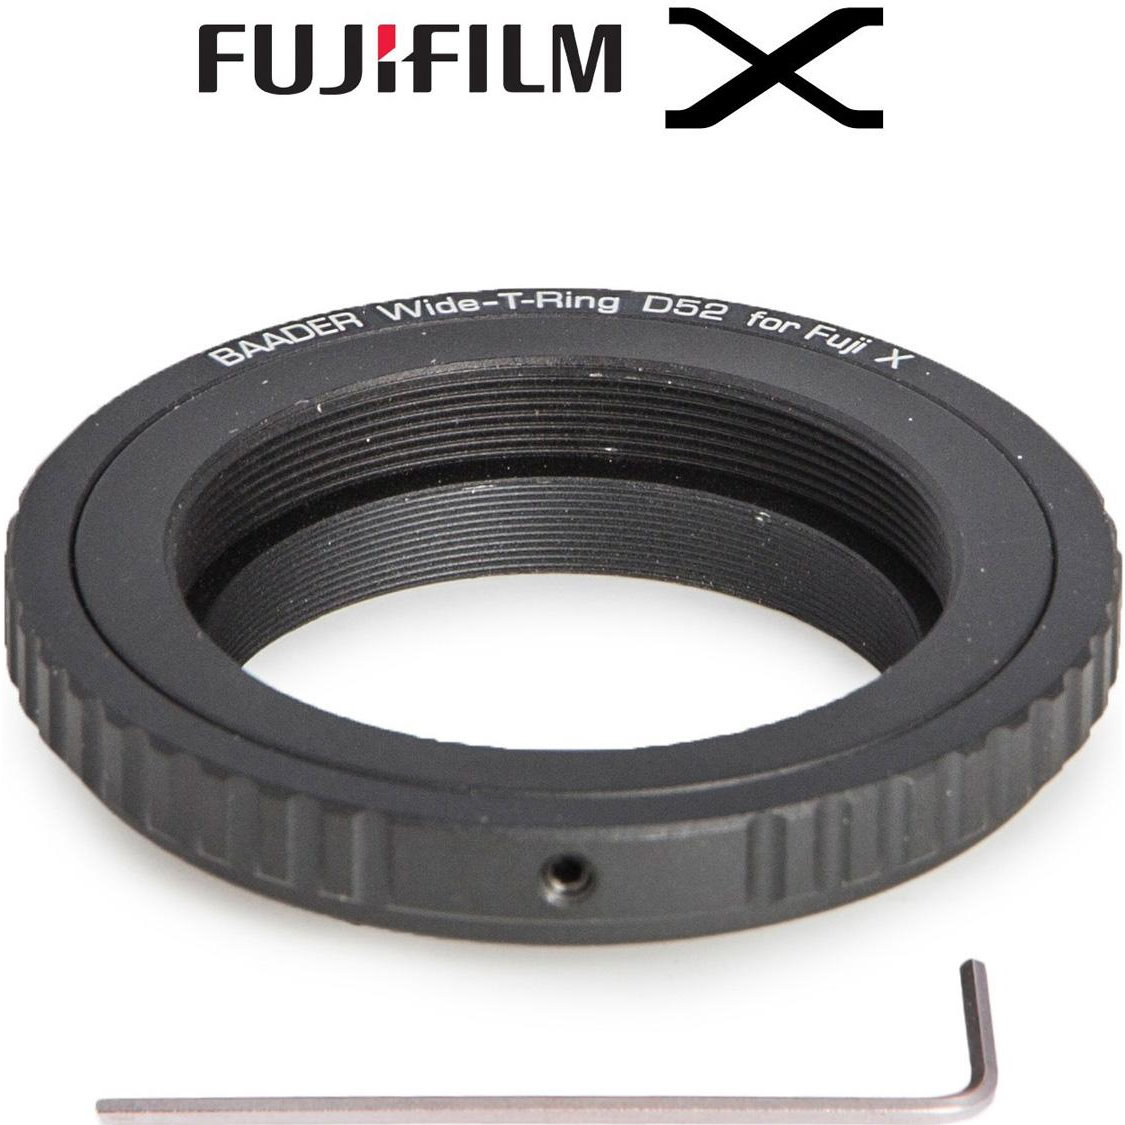 Bague adaptatrice S52 / T2 pour Fujifilm X - Baader